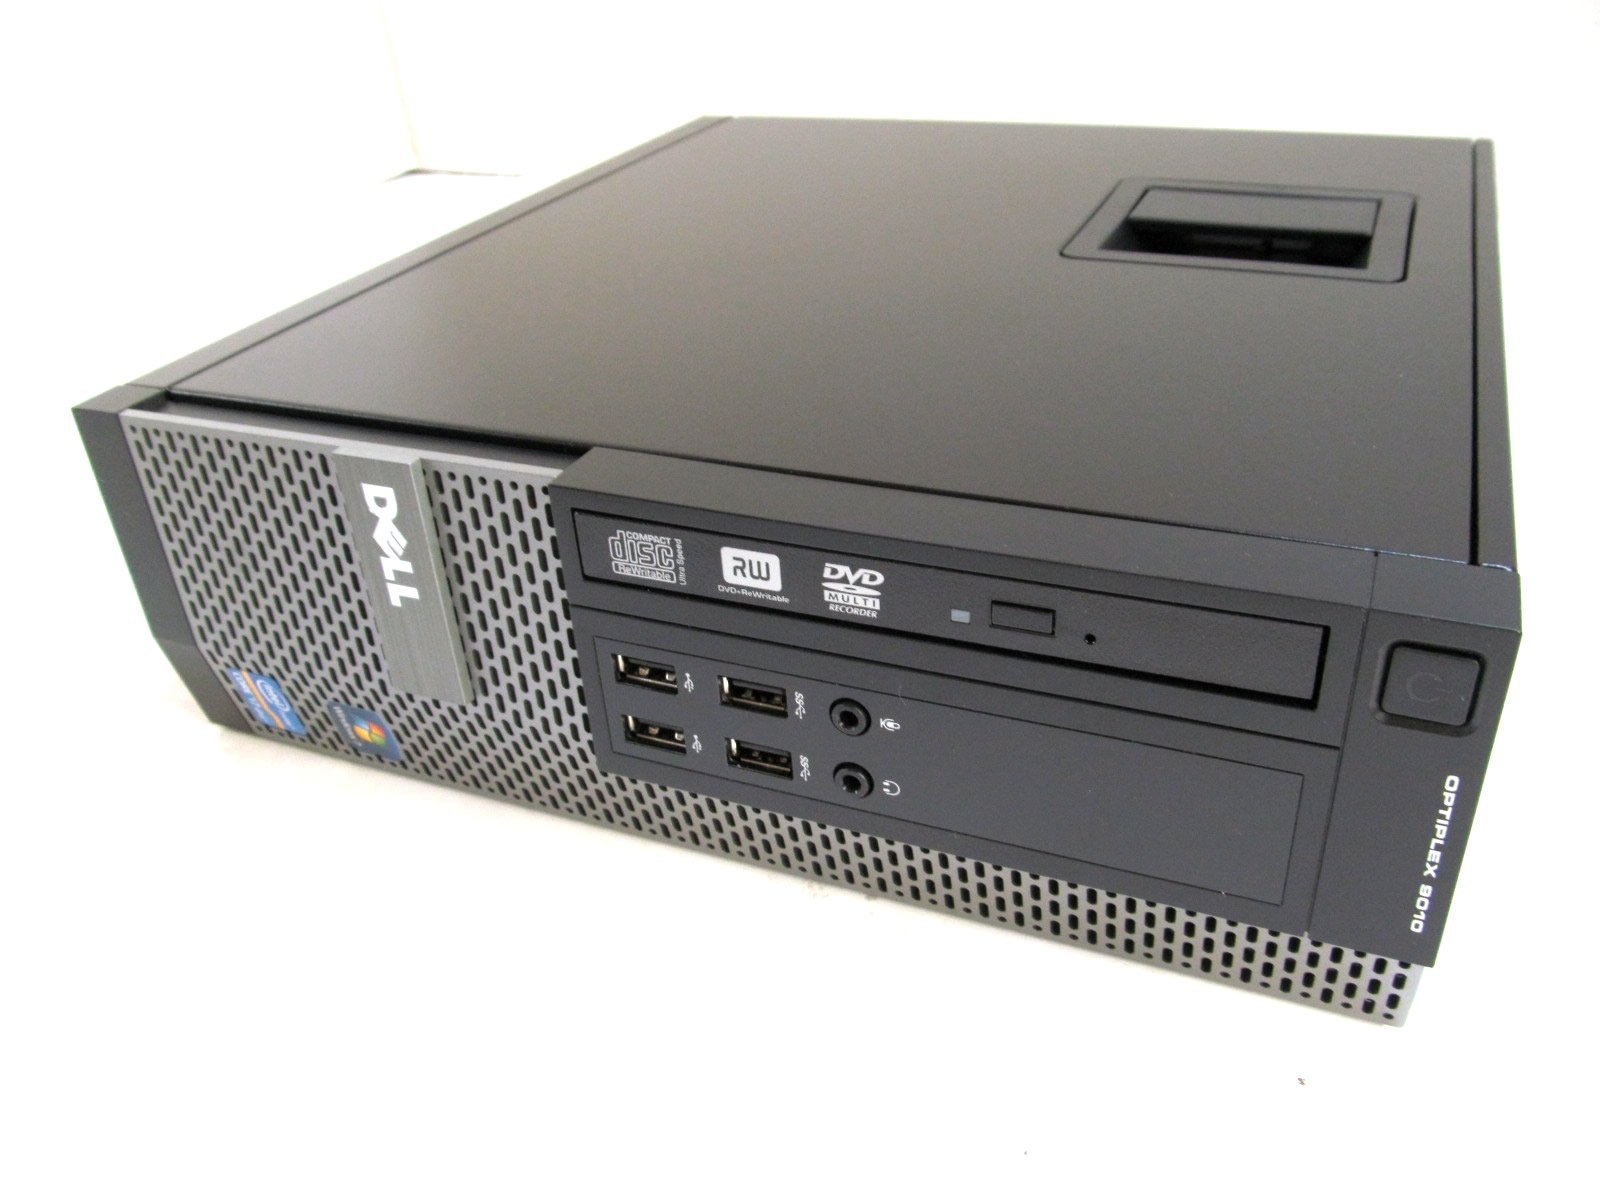 moreover Dell Optiplex 9020 Small Form Factor I7 as well B00H8XZ4B2 besides 291688203913 together with Dell Optiplex 755 Mini Tower Mt Quad Core C2q Q6700 2gb Ram 80gb Hdd Beginner28 168423742 2016 09 Sale P. on dell optiplex 7010